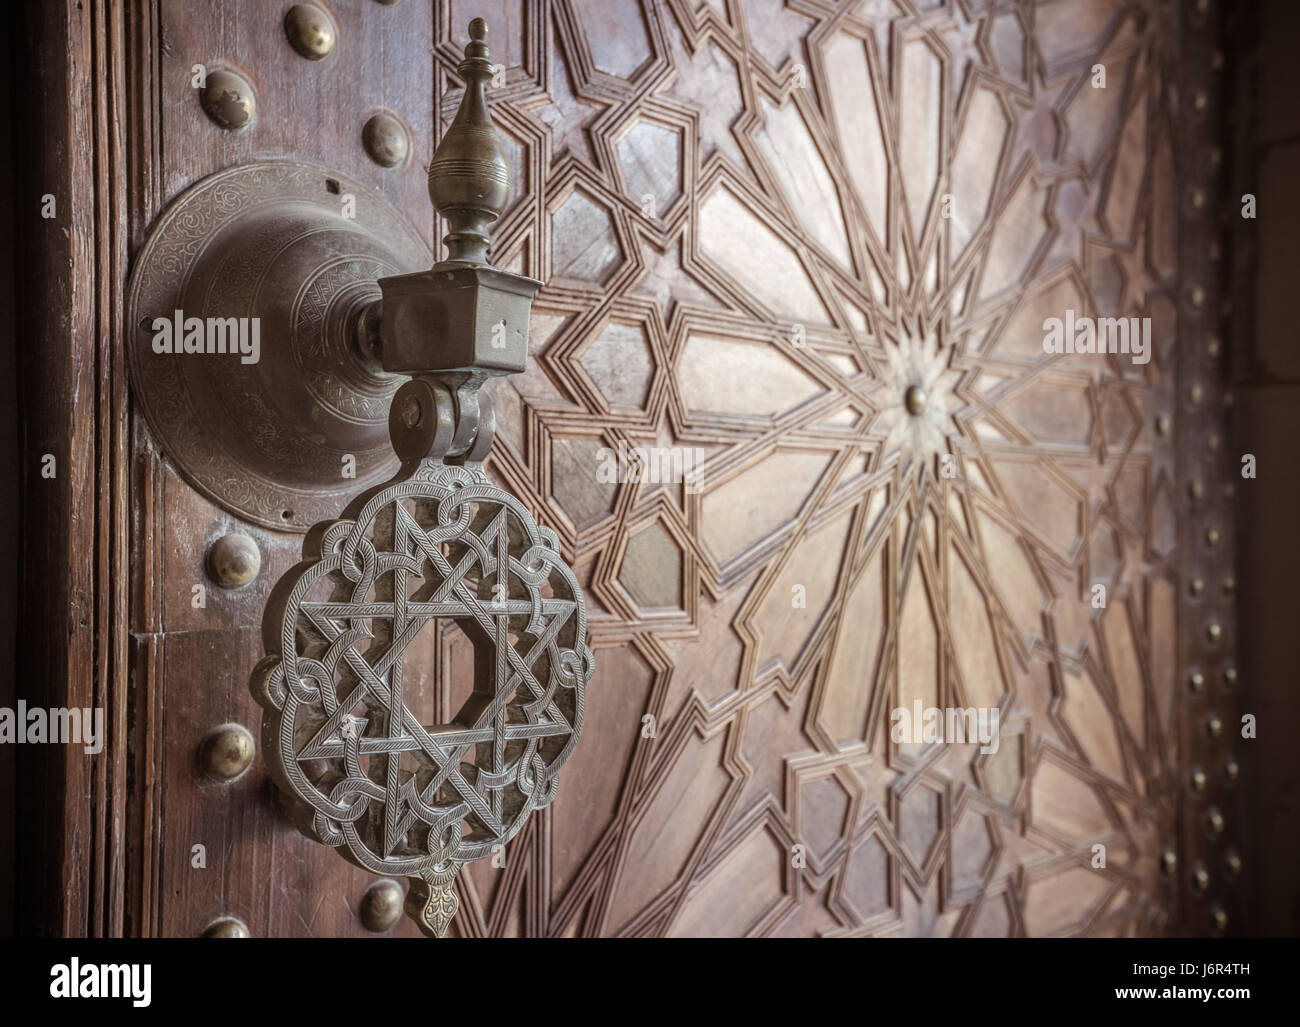 Ancient moroccan doors - Stock Image - Antique Moroccan Doors Stock Photos & Antique Moroccan Doors Stock